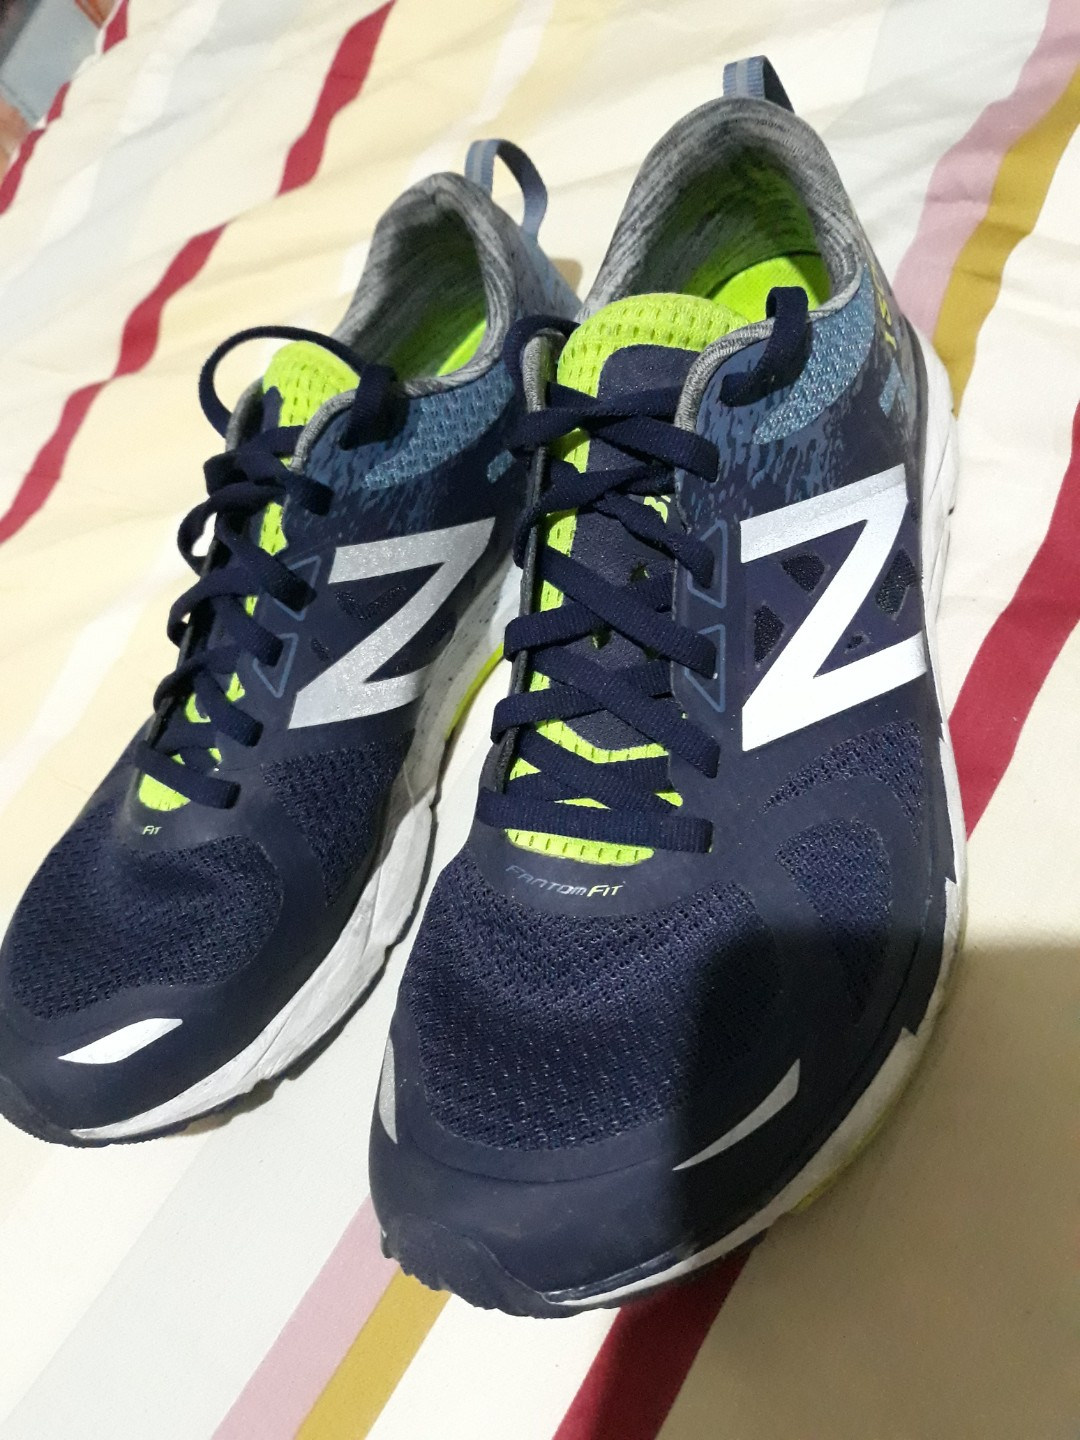 7184293a5e7 New Balance for Men Size 8.5US